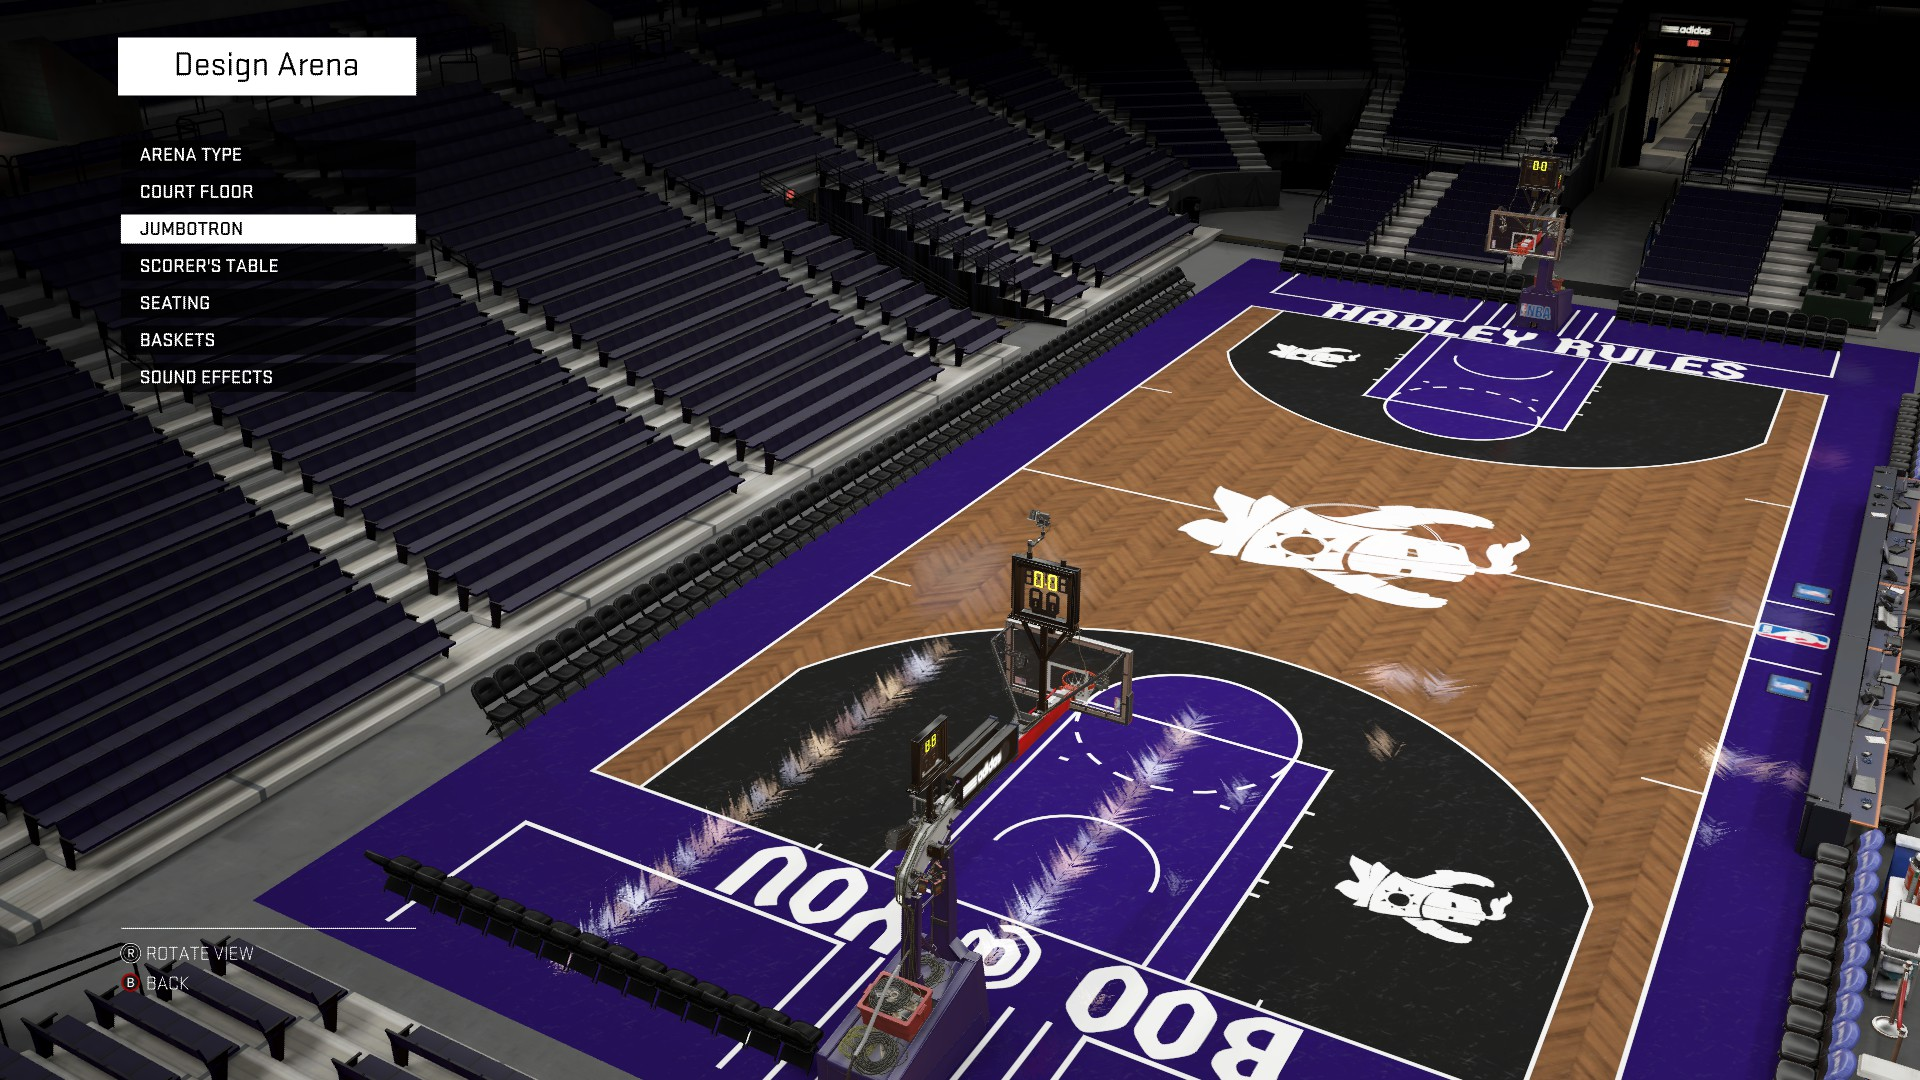 Nba 2k16 court designs and jersey creations page 10 for Design basketball court